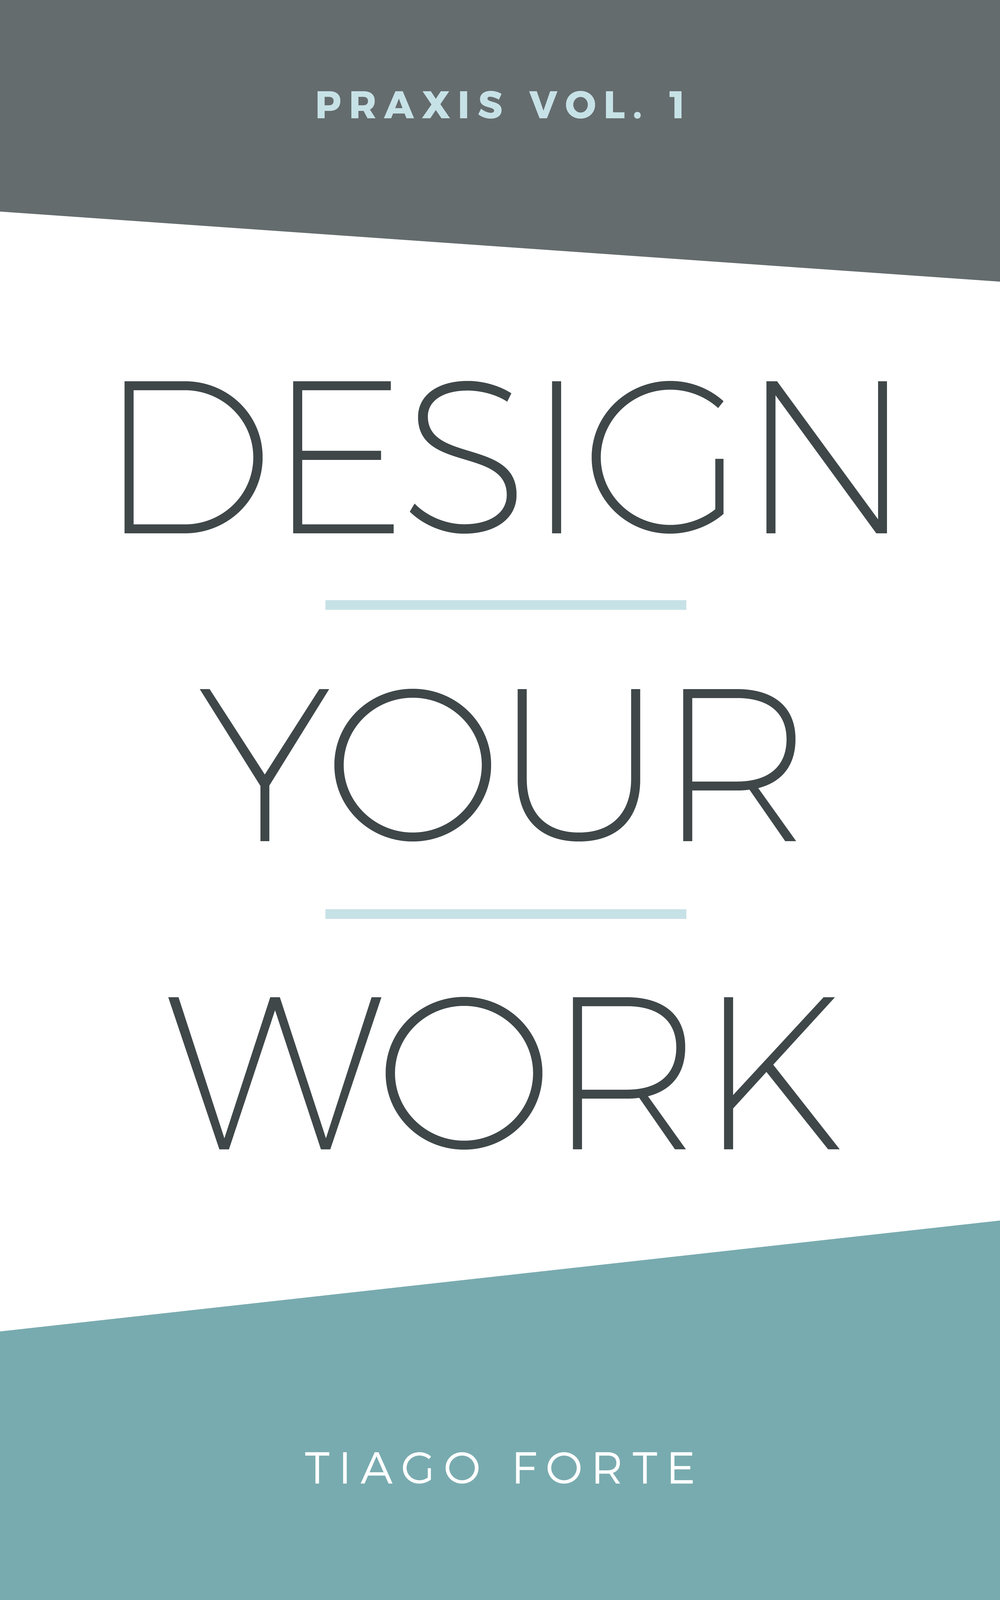 design_your_work_cover-01-01.jpg